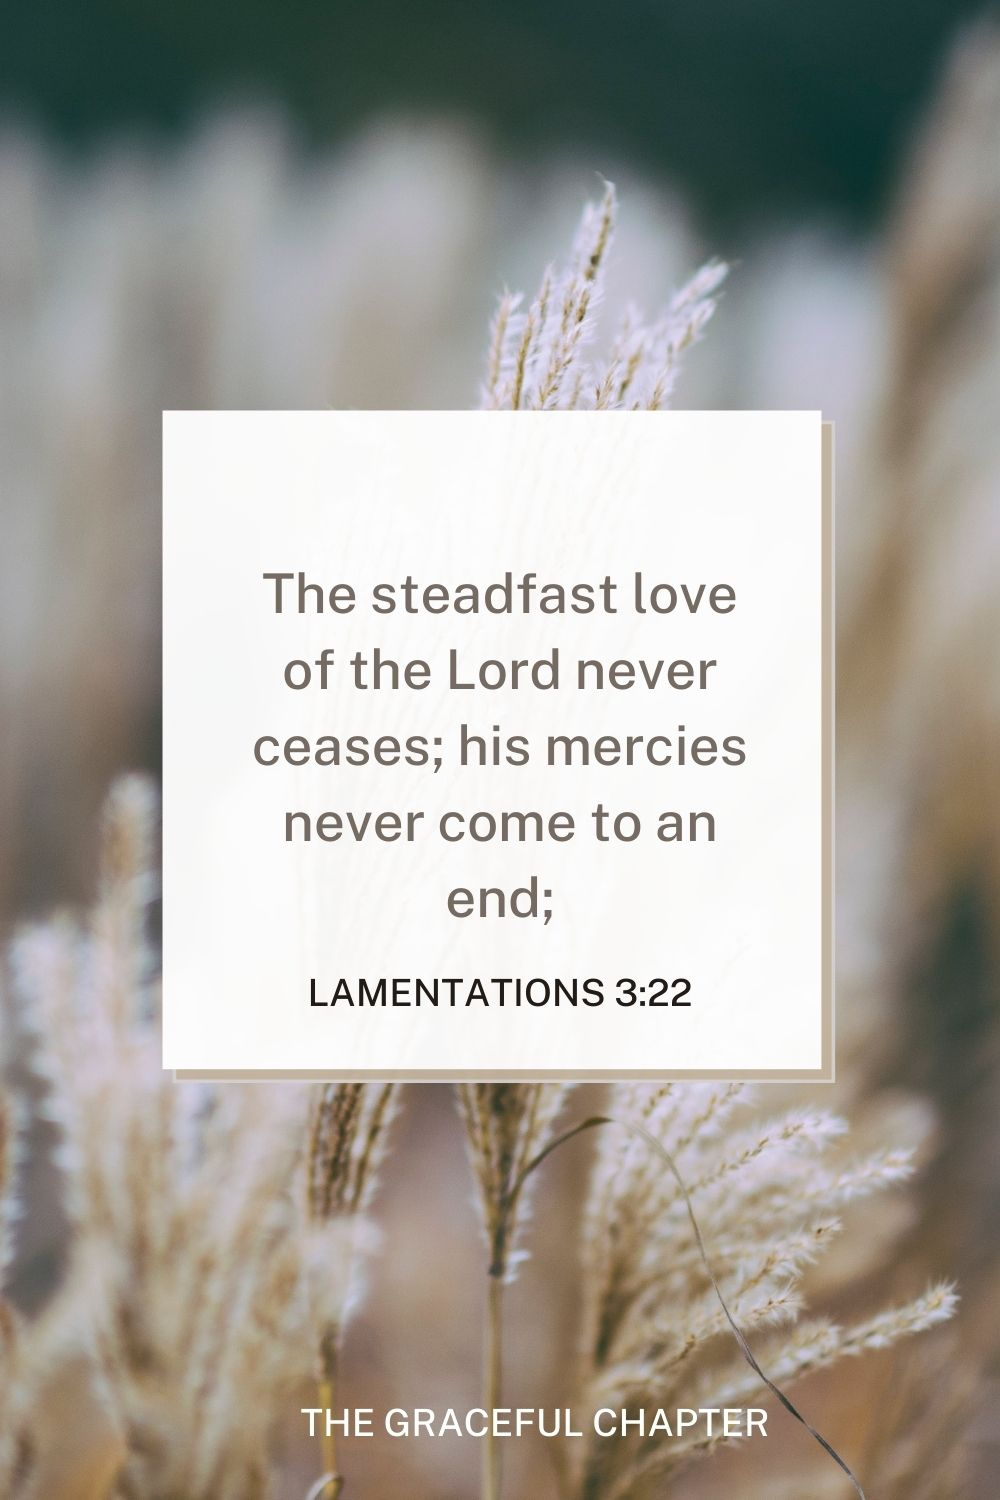 The steadfast love of the Lord never ceases; his mercies never come to an end; Lamentations 3:22